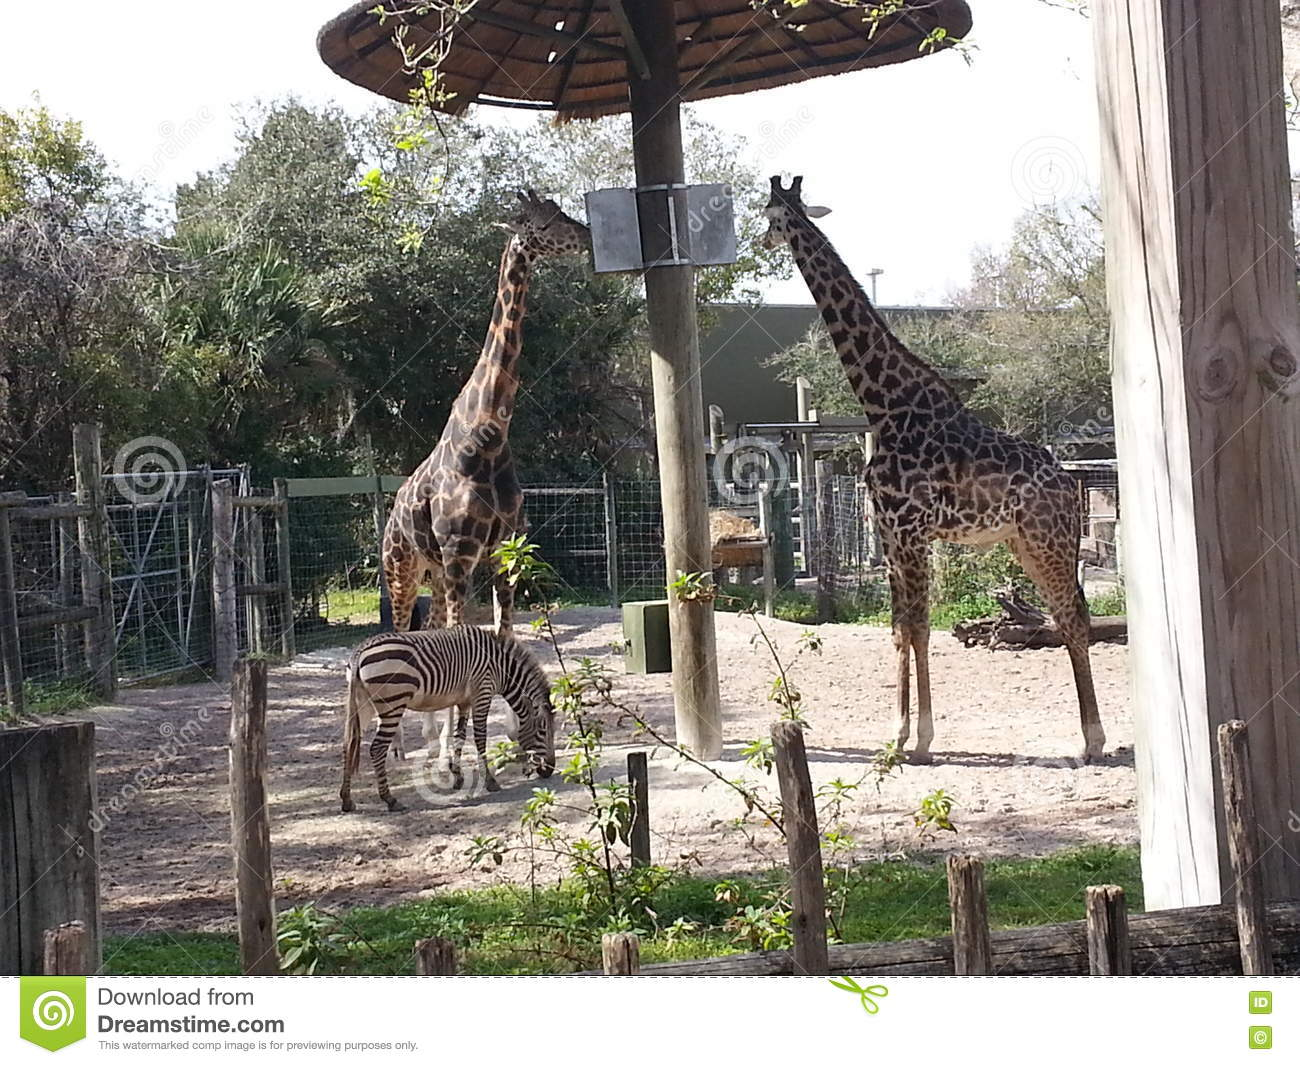 Two Giraffes And Zebra At Tampa Zoo Stock Image - Image of